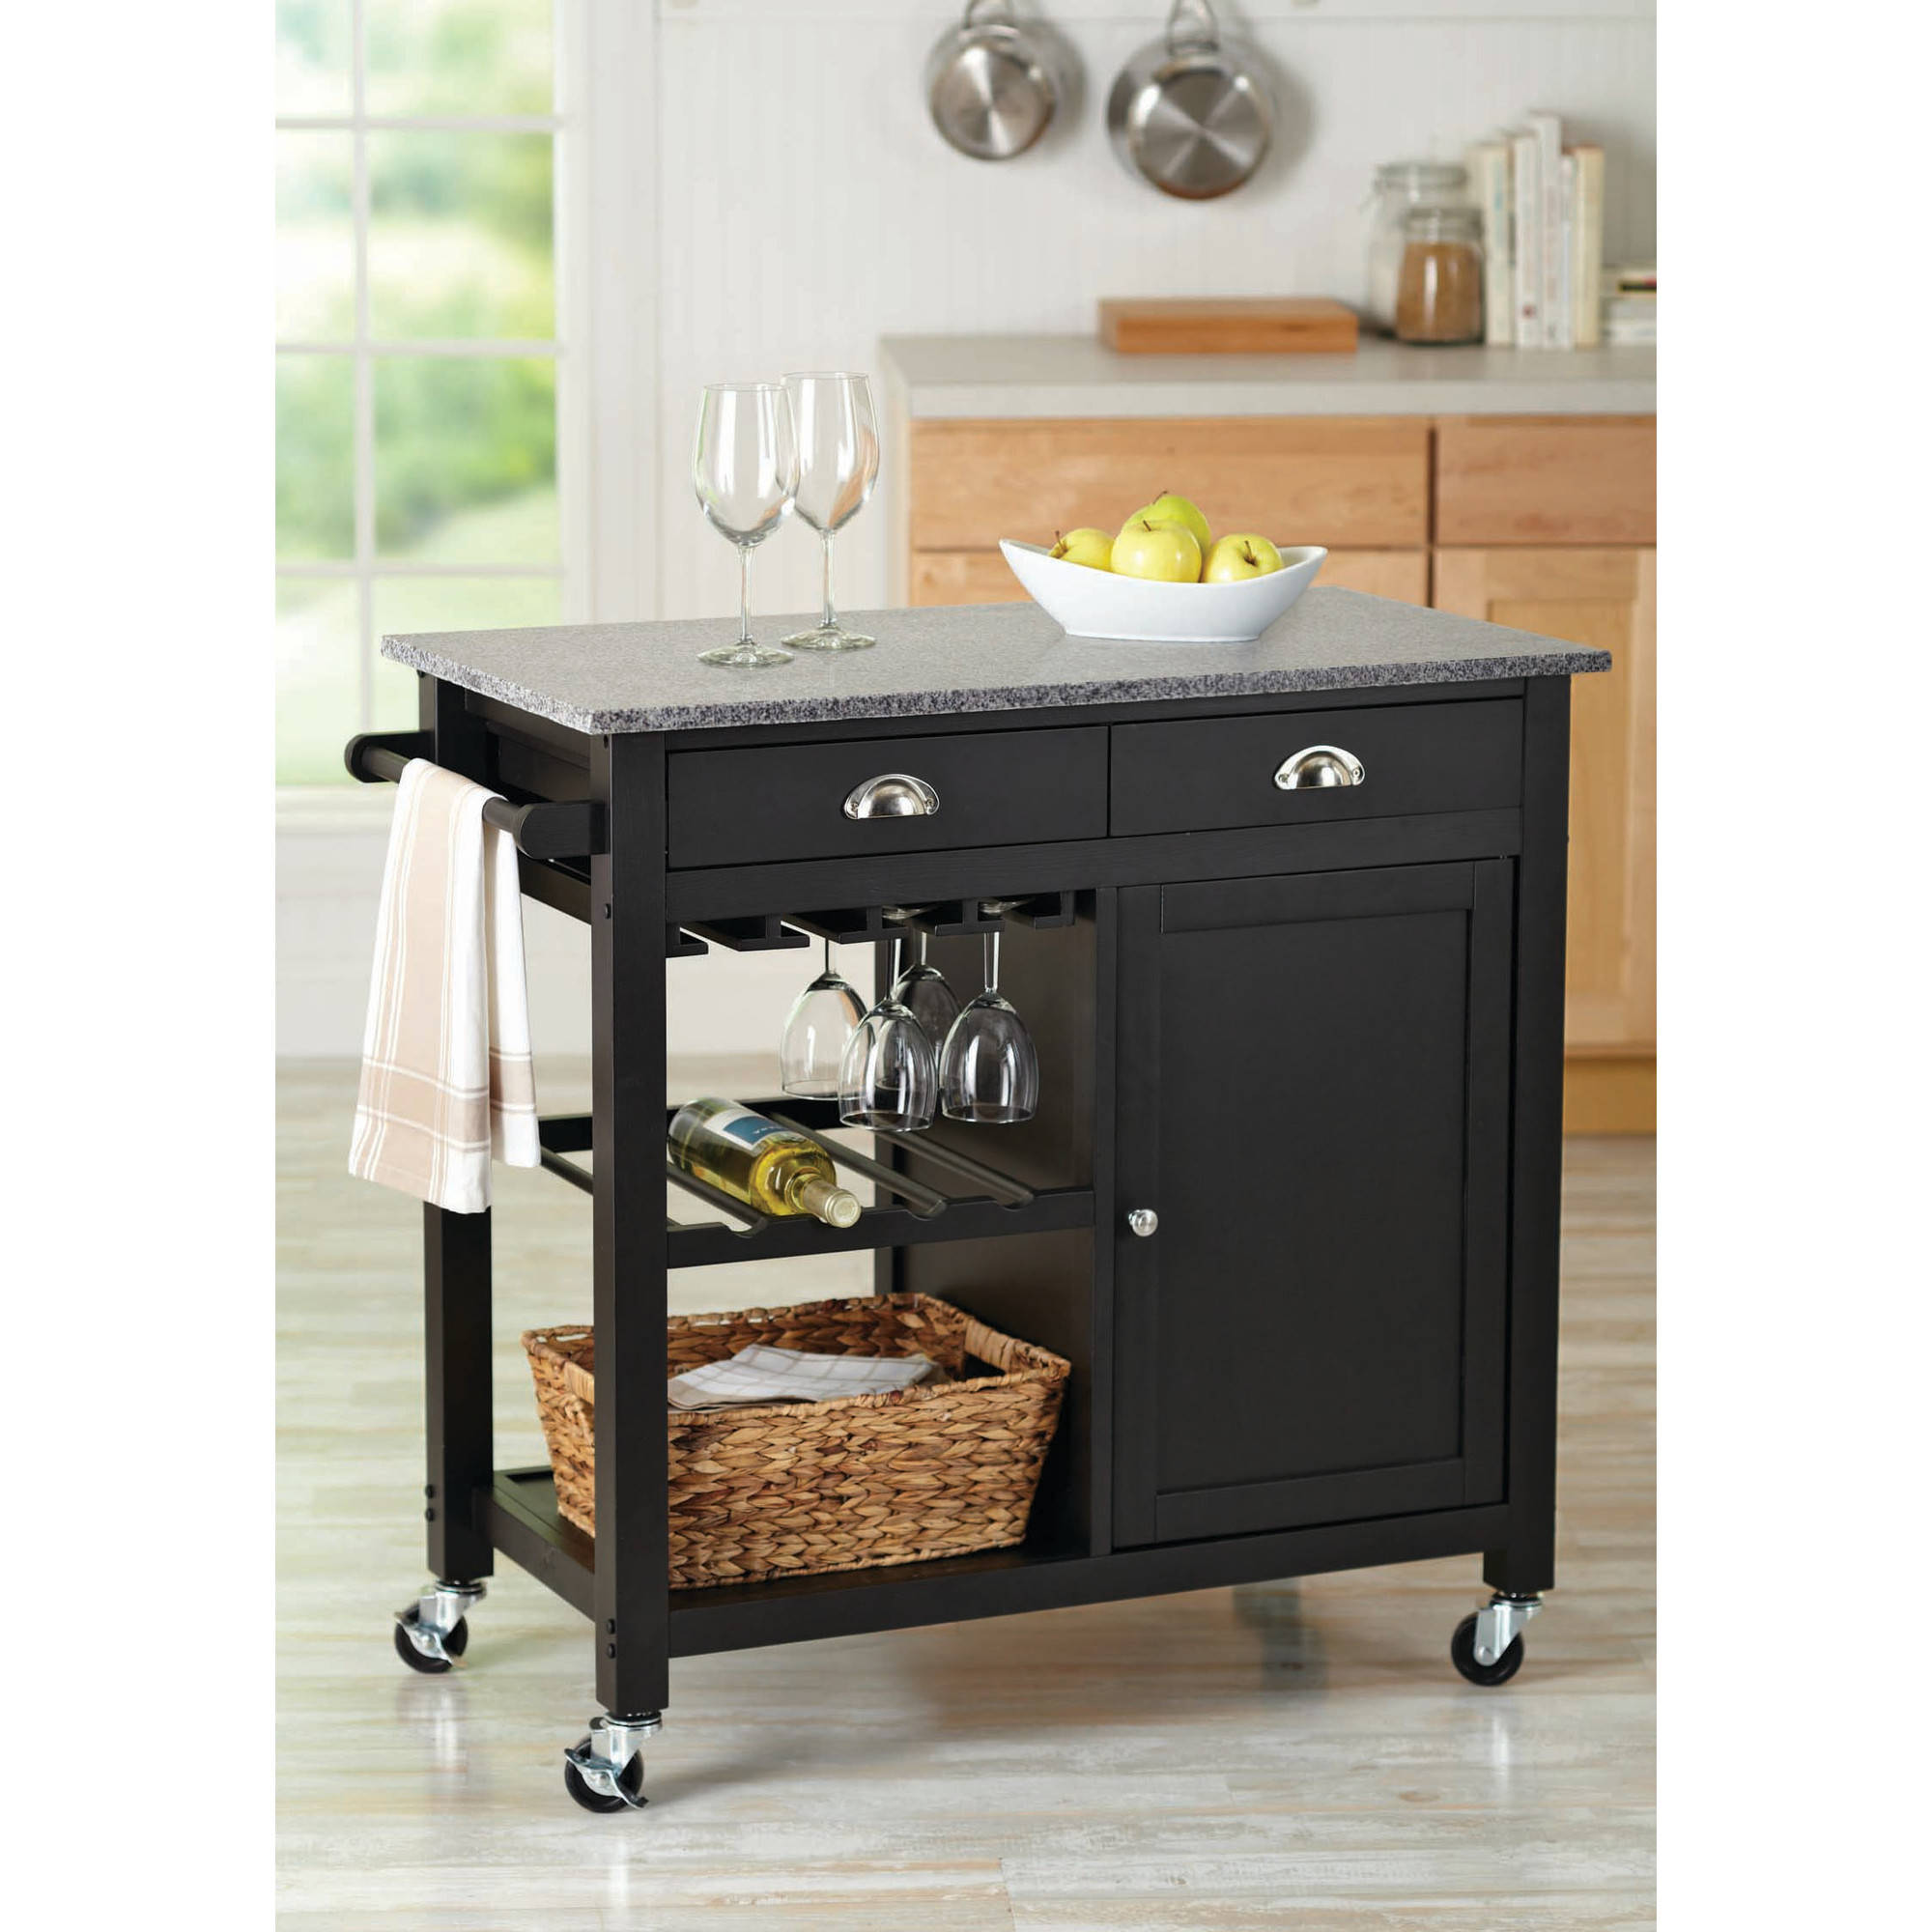 Better homes and gardens kitchen - Better Homes Gardens Bhg Deluxe Kitchen Cart Island Black Walmart Com